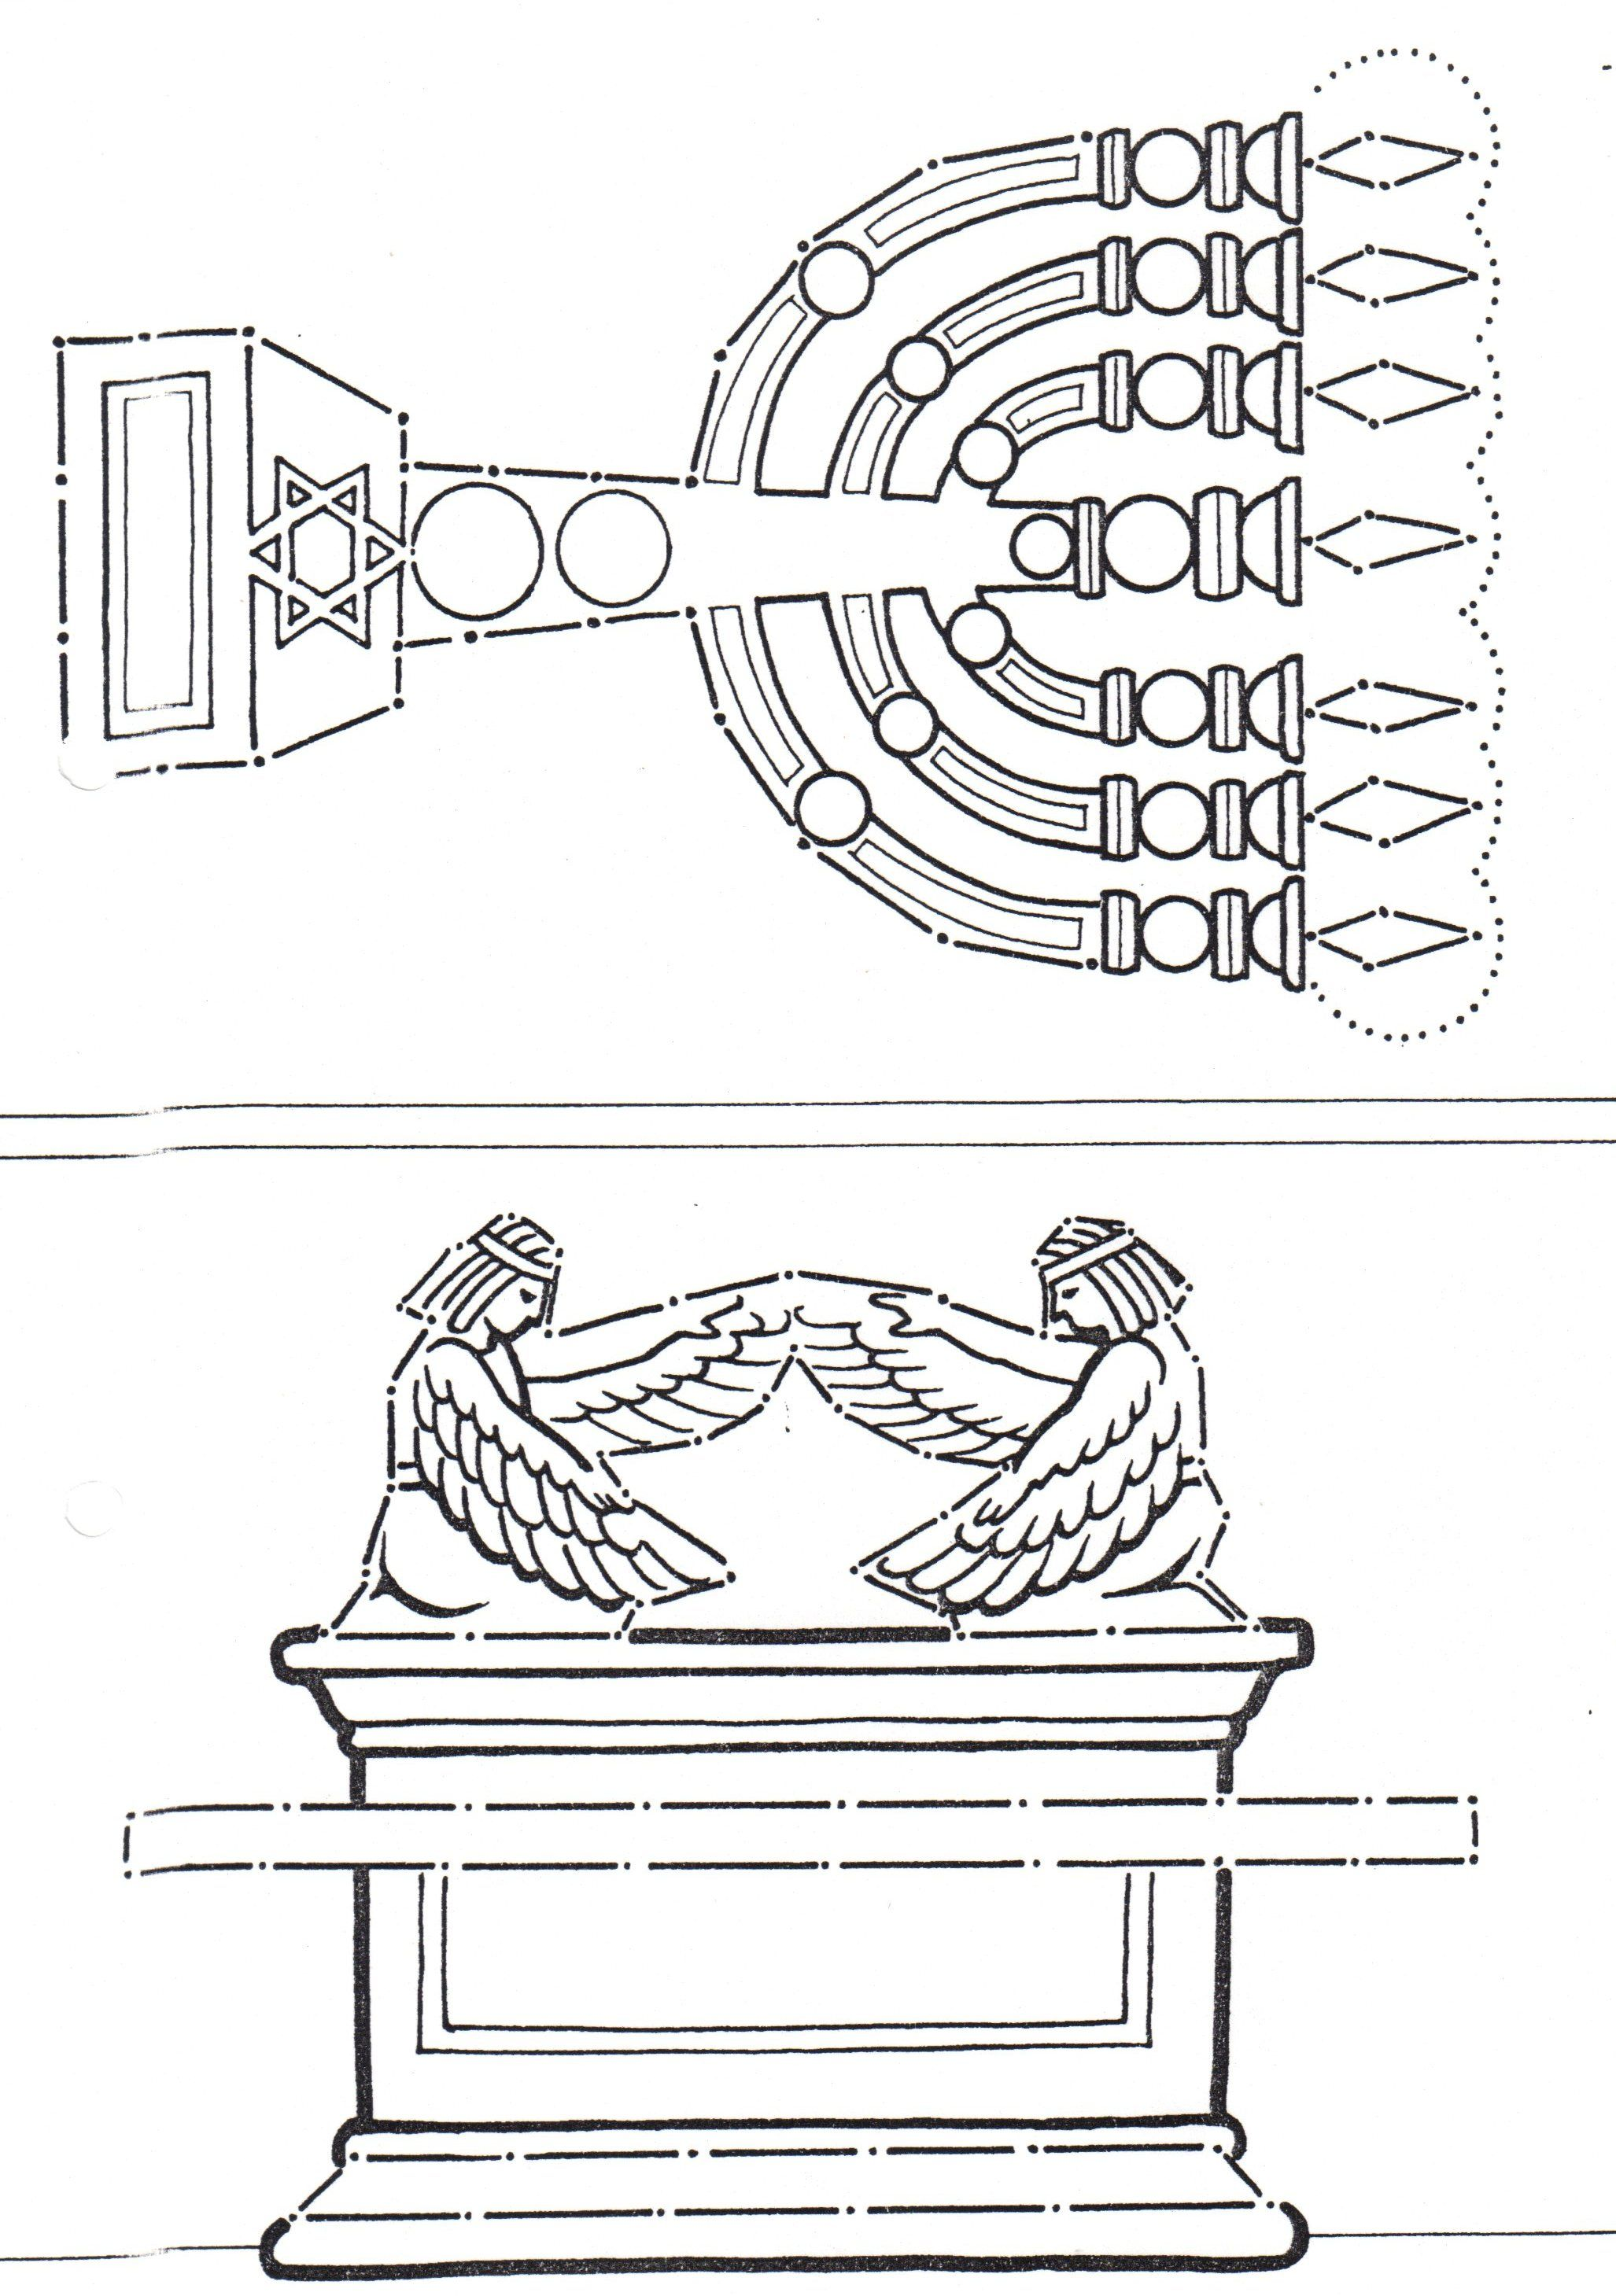 Coloring picture of the ark of covenant - Ark Of Covenant And Lampstand From The Tabernacle And Temple